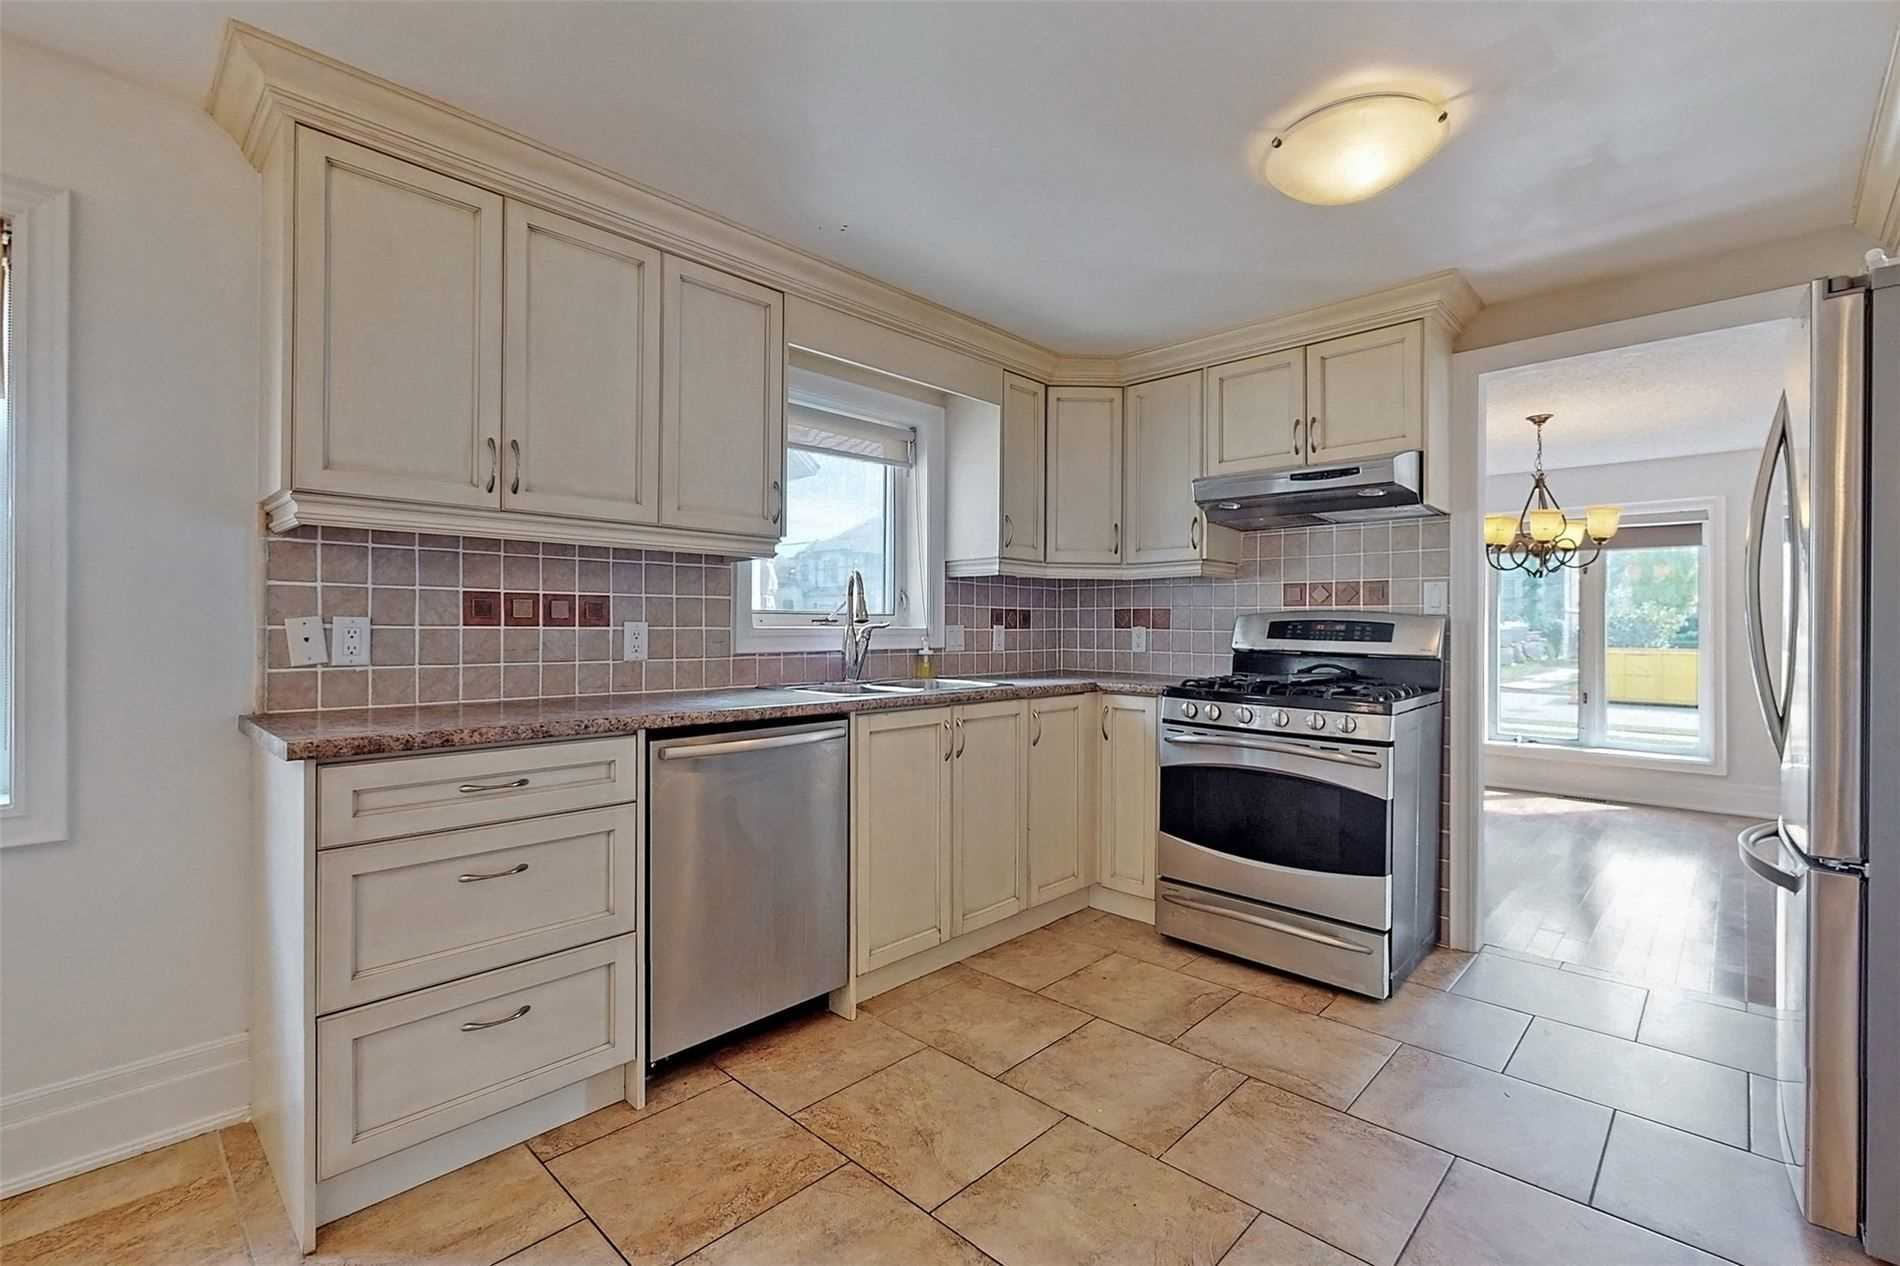 Detached house For Sale In Richmond Hill - 64 Bond Cres, Richmond Hill, Ontario, Canada L4E3K5 , 3 Bedrooms Bedrooms, ,3 BathroomsBathrooms,Detached,For Sale,Bond